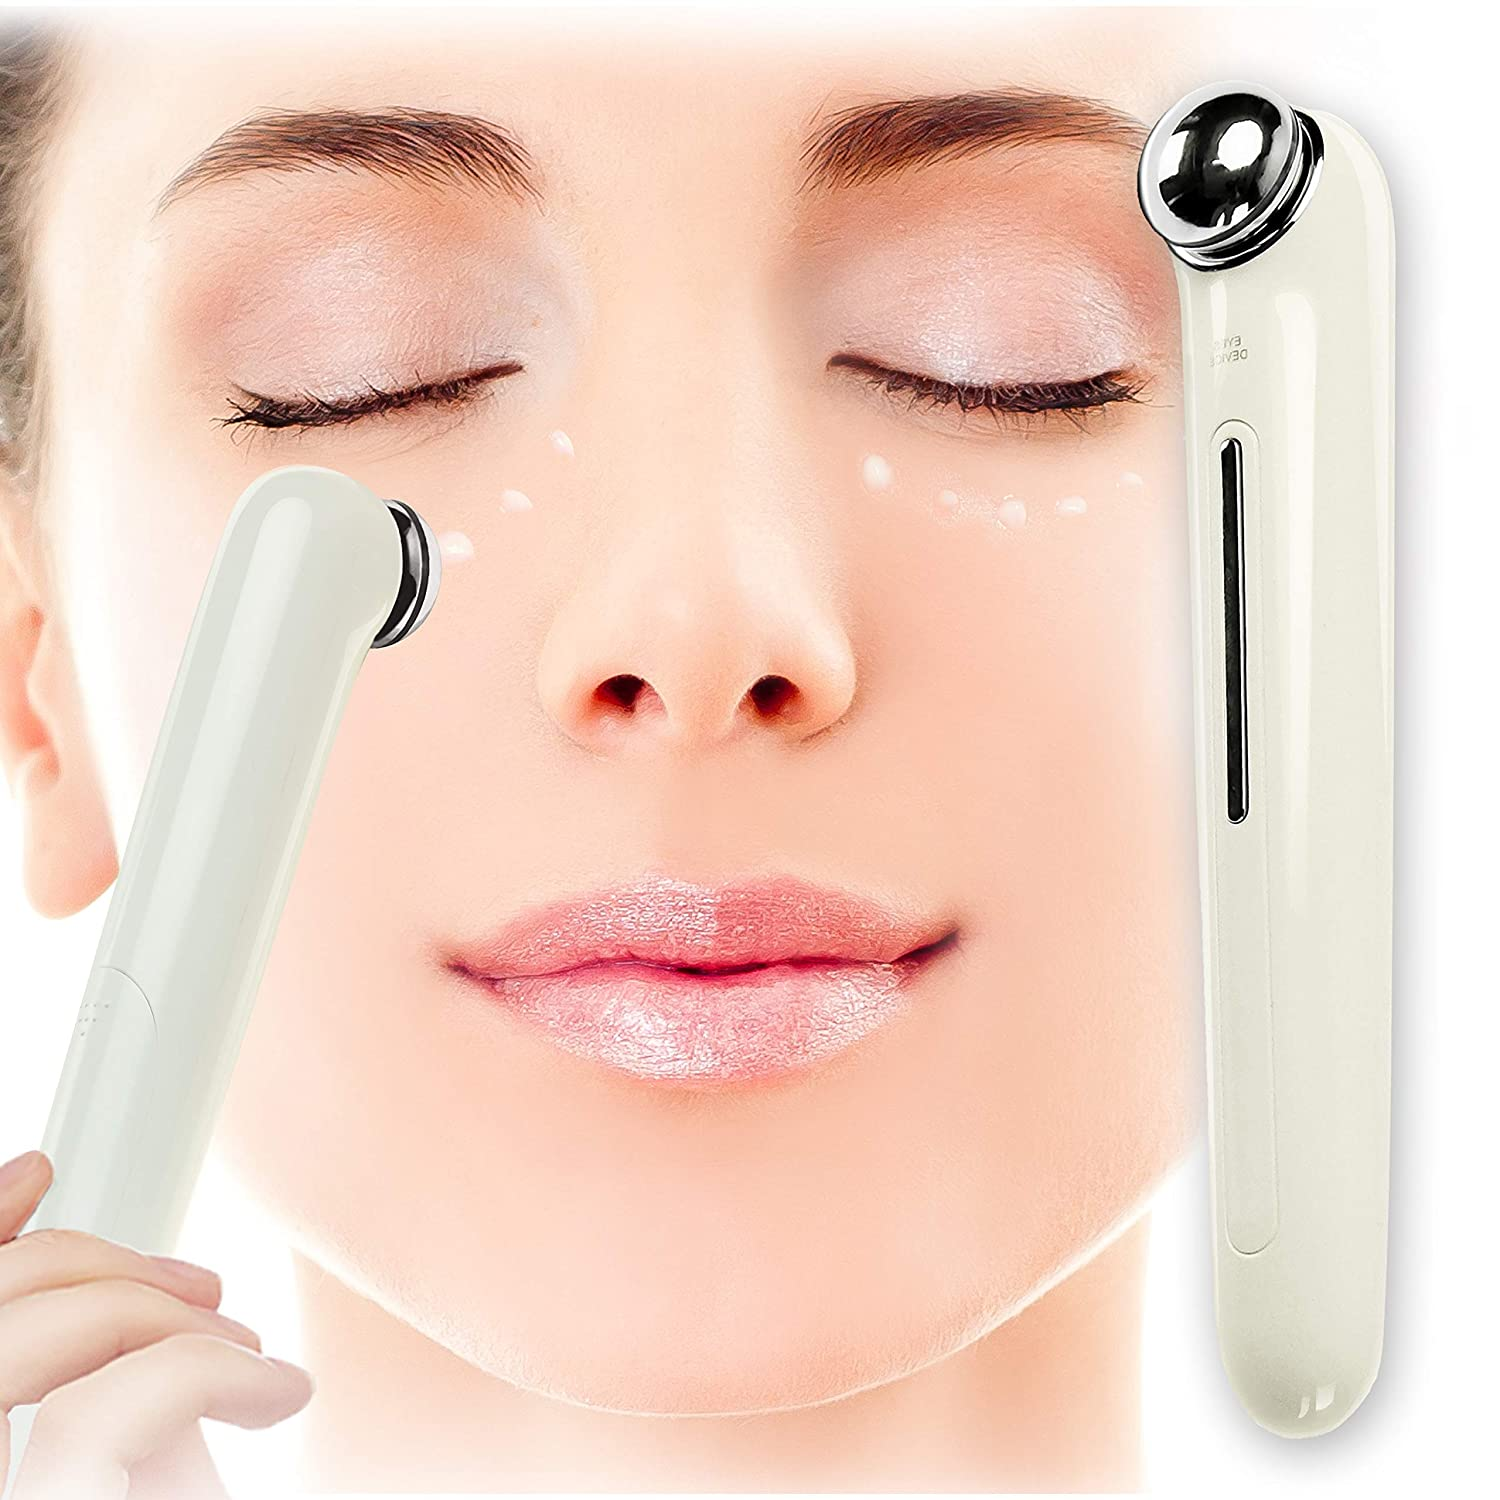 Star Brand Eye Massager Eye Pen ION infusion Eye Contour Care Instrument Remove Wrinkles Dark Circles Puffiness Mini Massage Relaxation Equipment